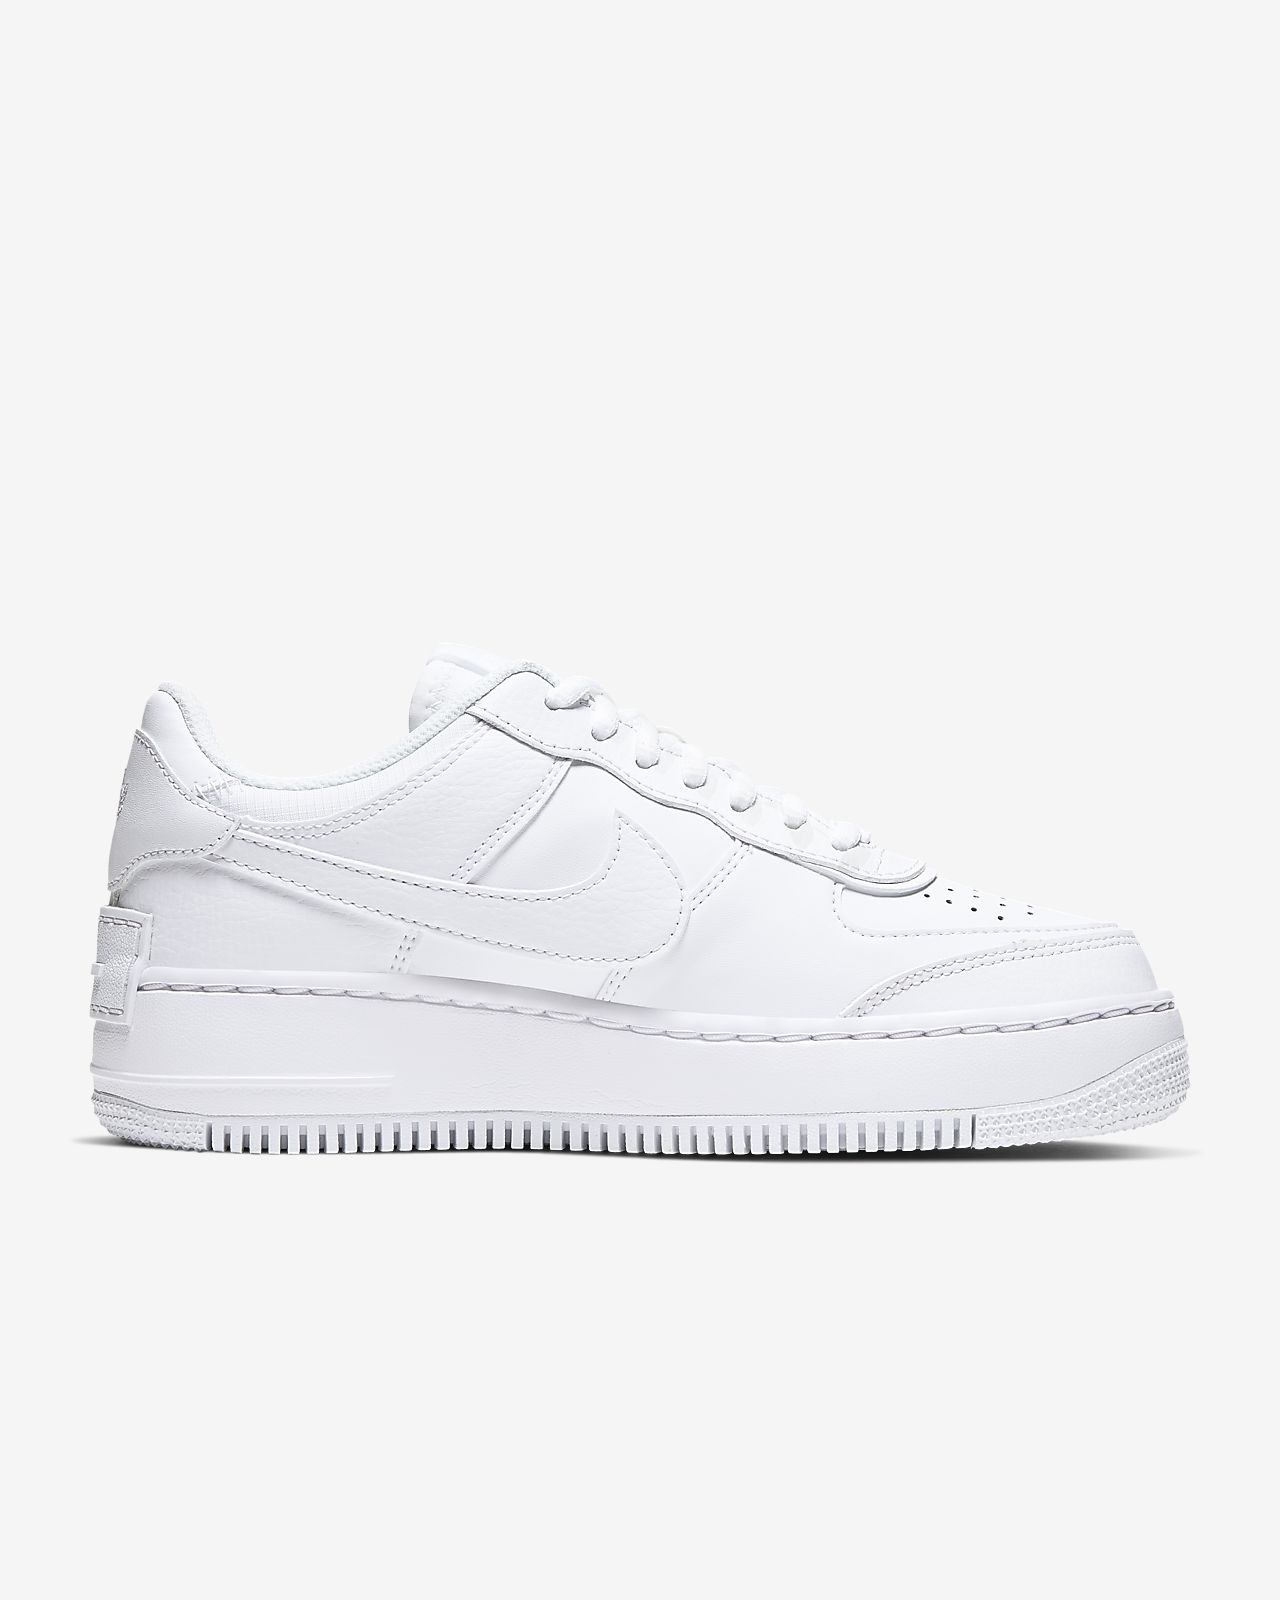 Nike Air Force 1 | Men's, Women's & Kids' Trainers | schuh